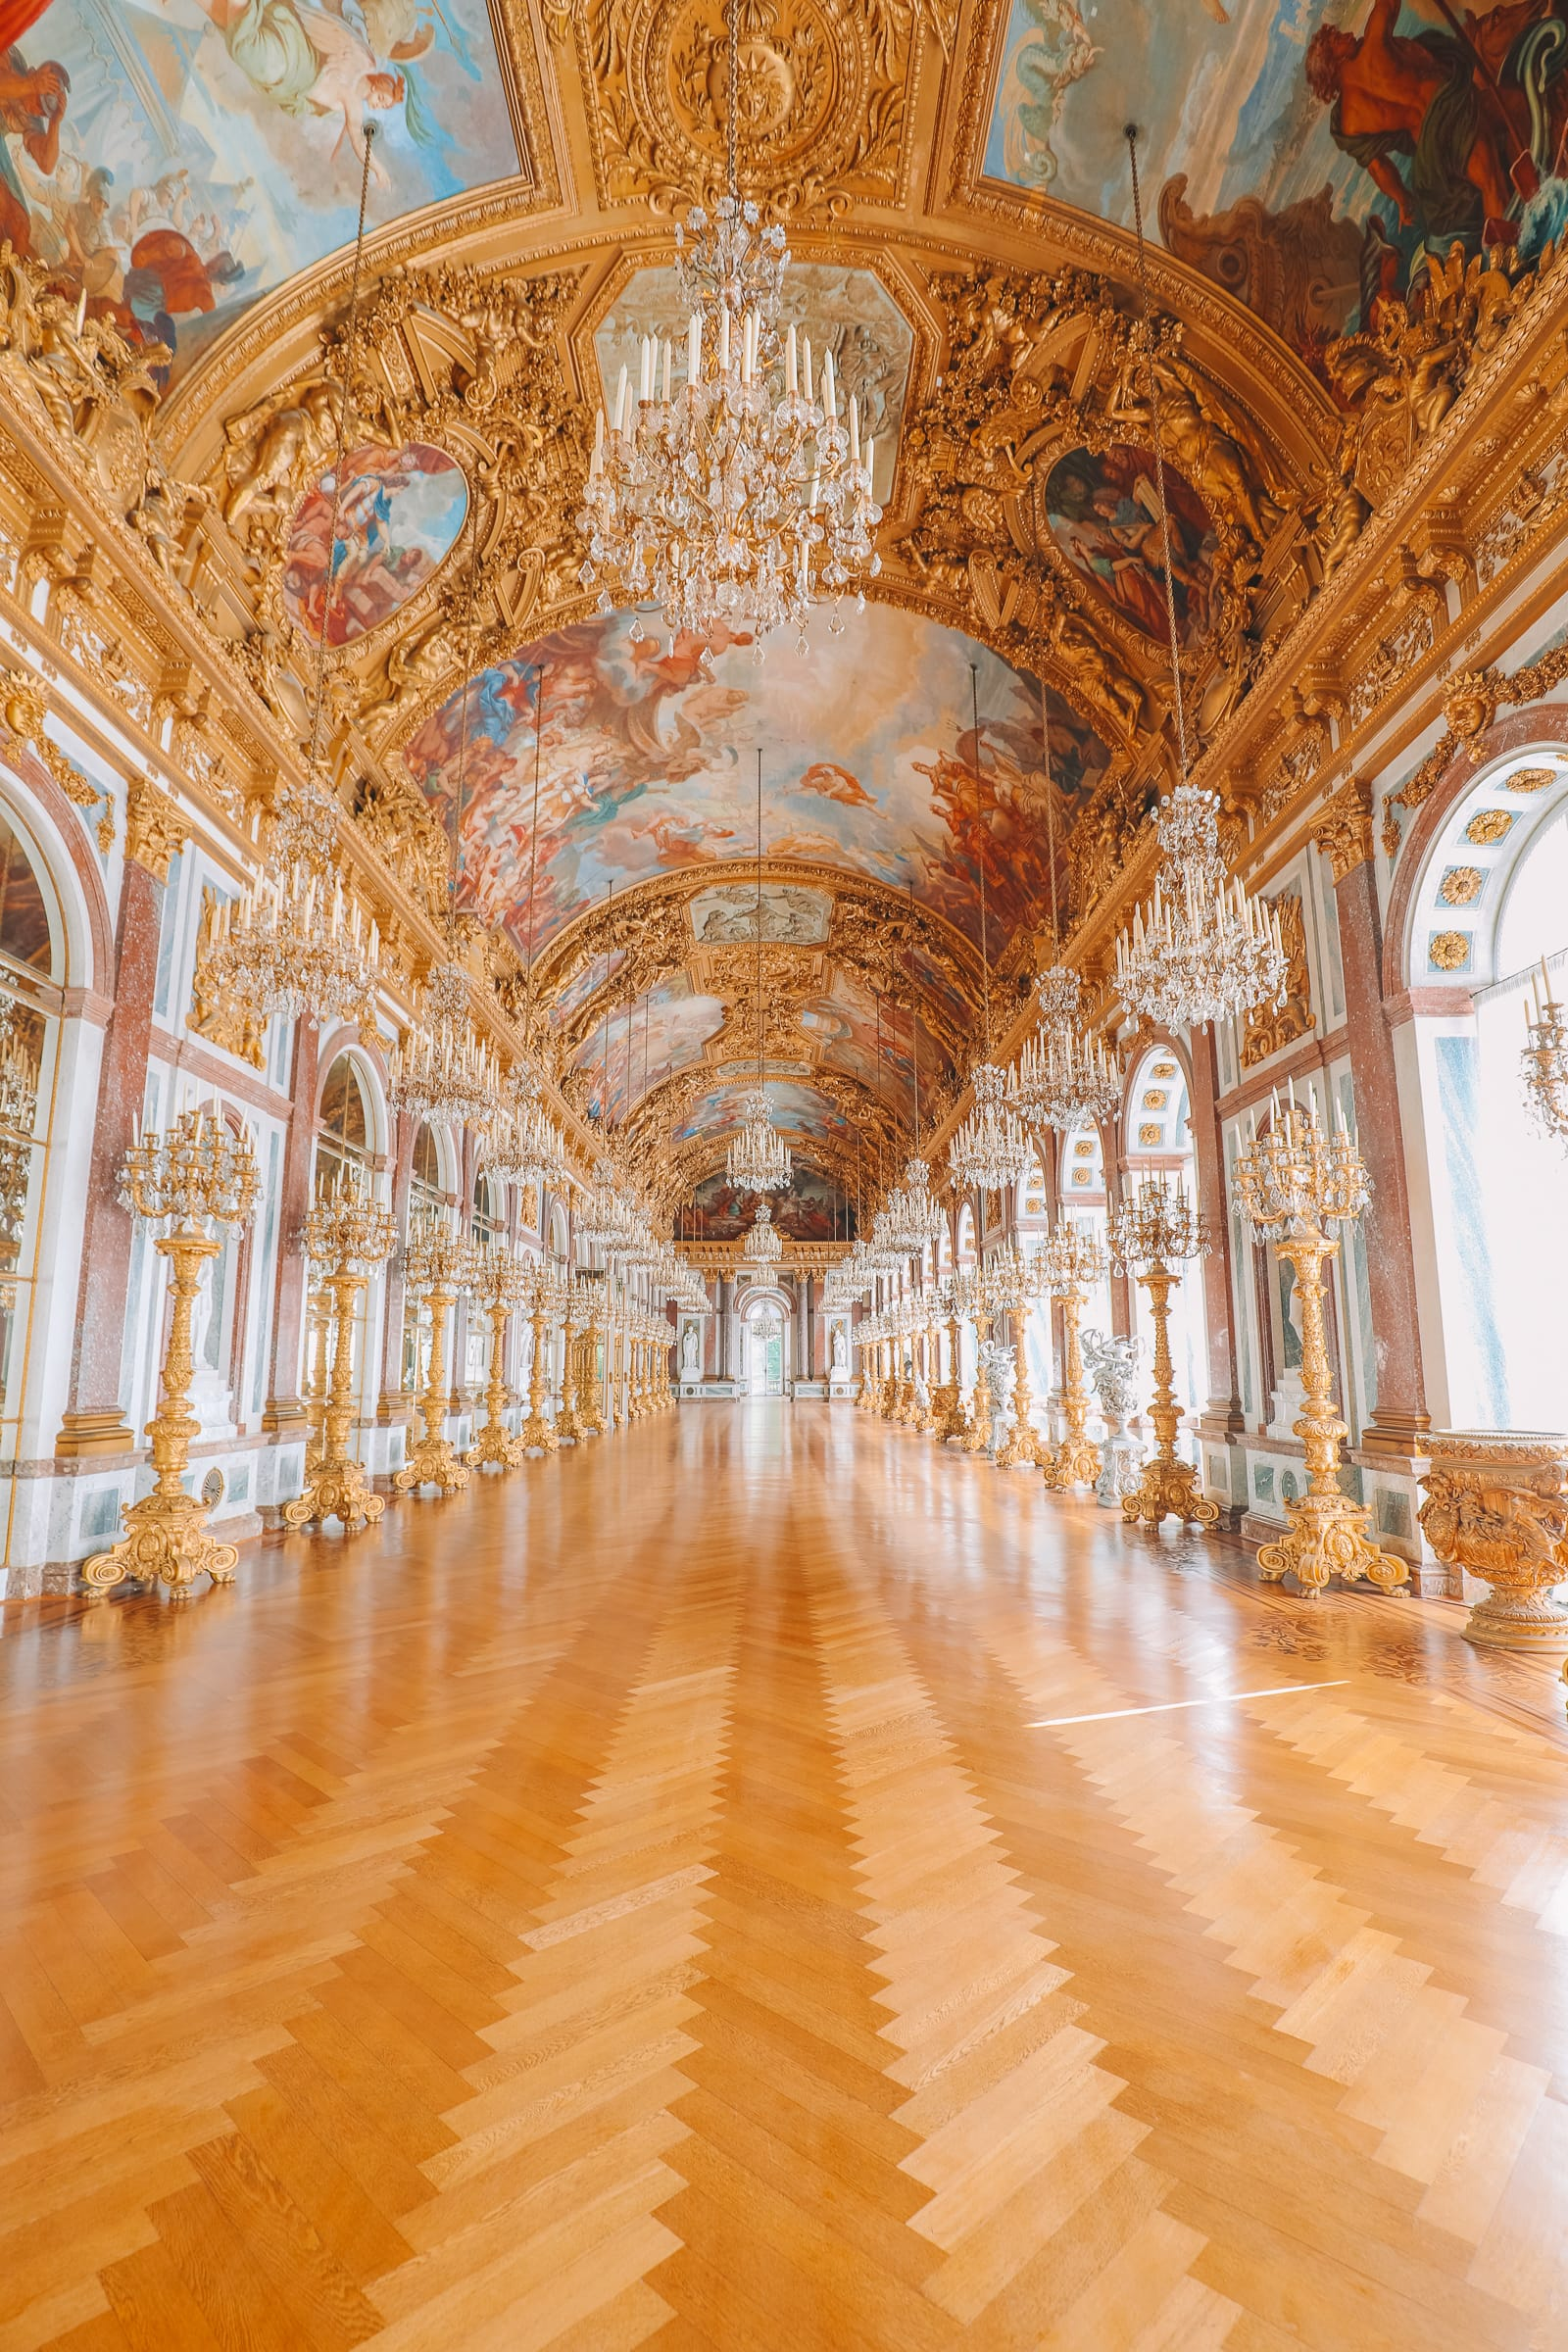 Herrenchiemsee Palace - One Of The Most Beautiful And Grandest Palaces In Germany You Have To Visit! (33)